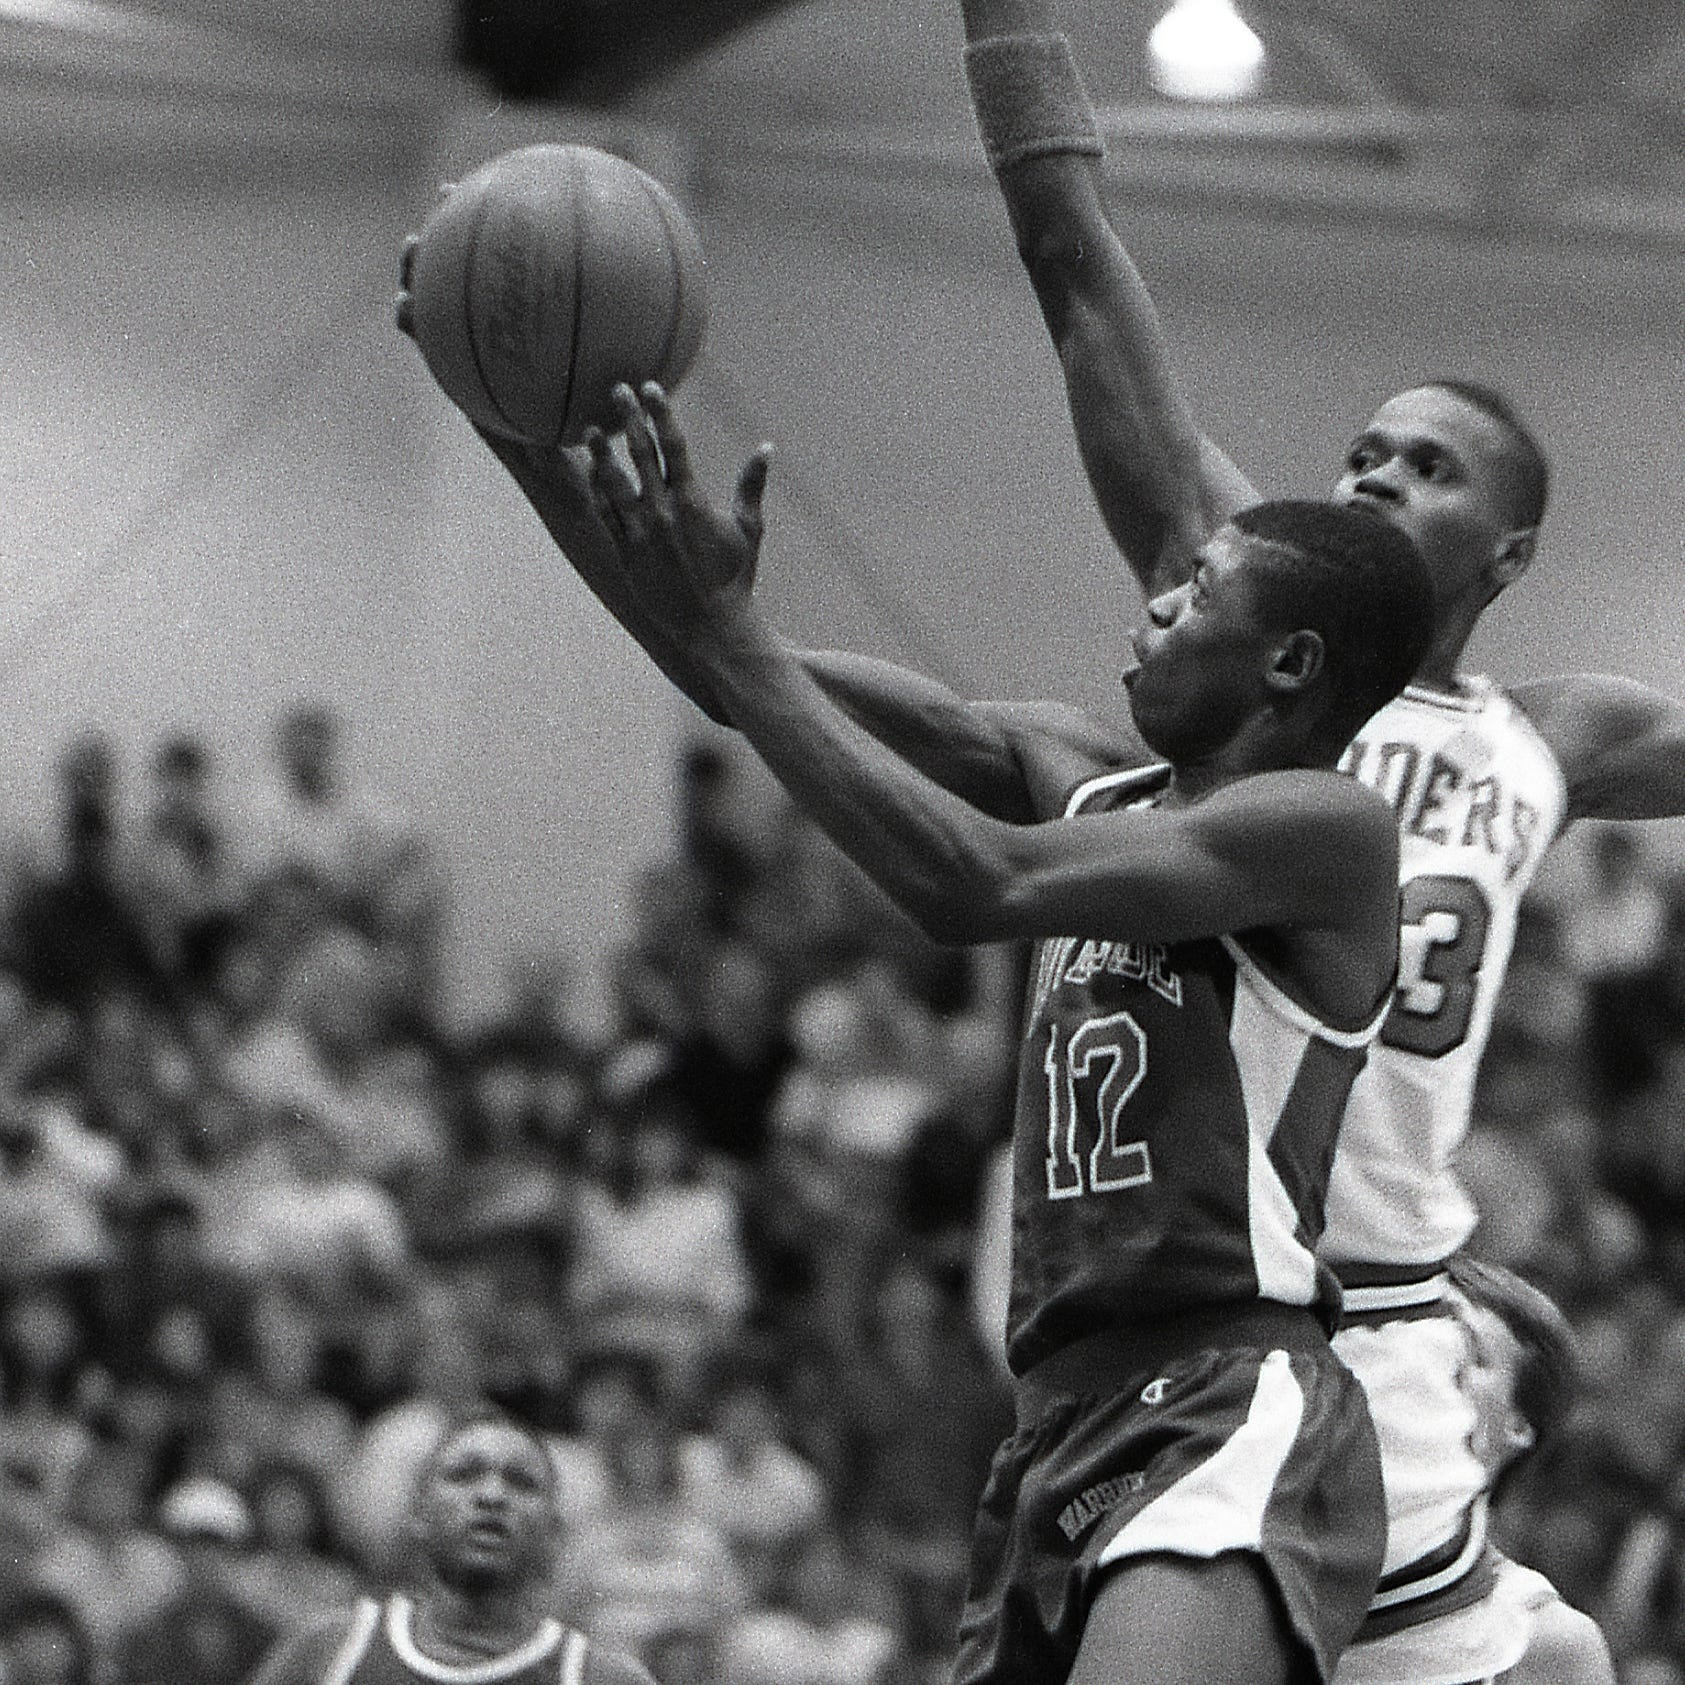 David Young, former Clemson and Greenville High basketball standout, dies